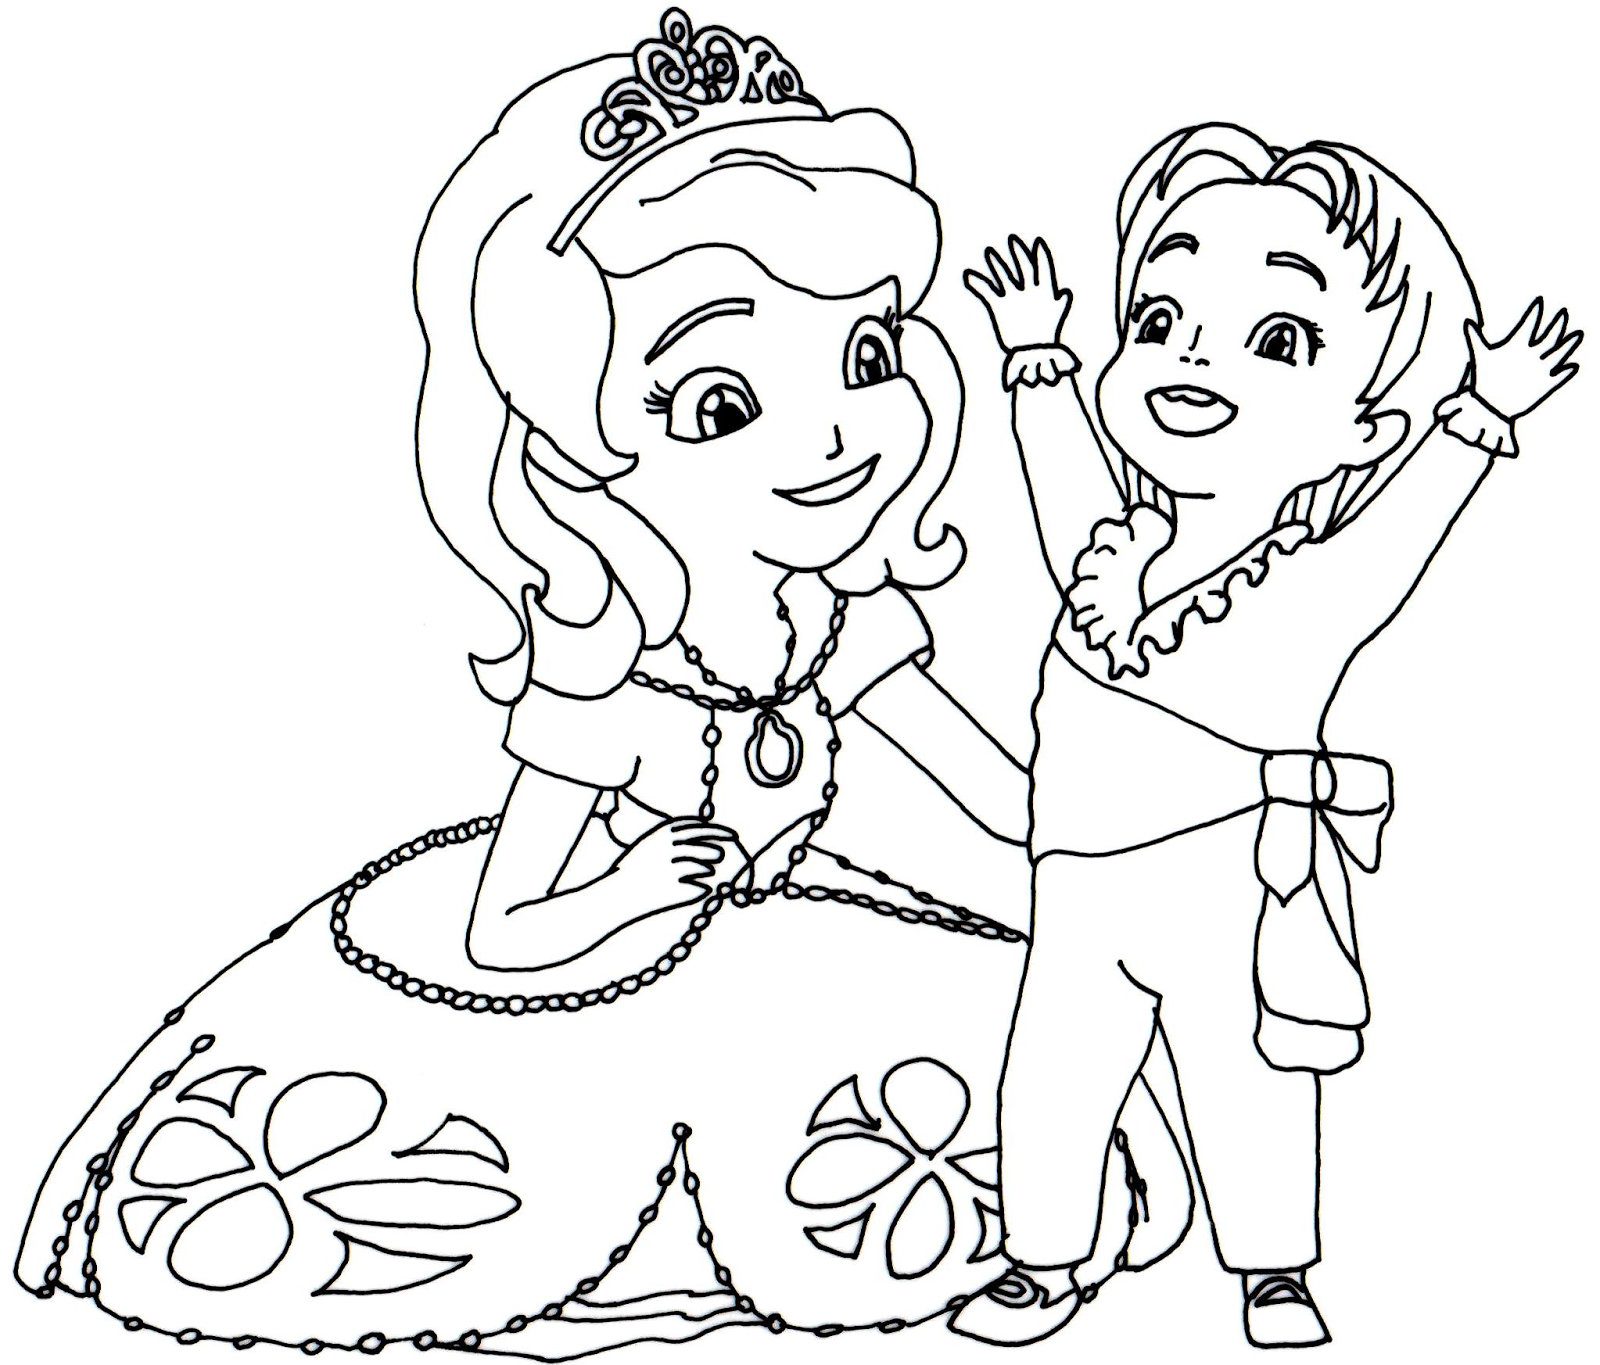 sofia the first coloring pages to print - Disney Coloring Pages on ...